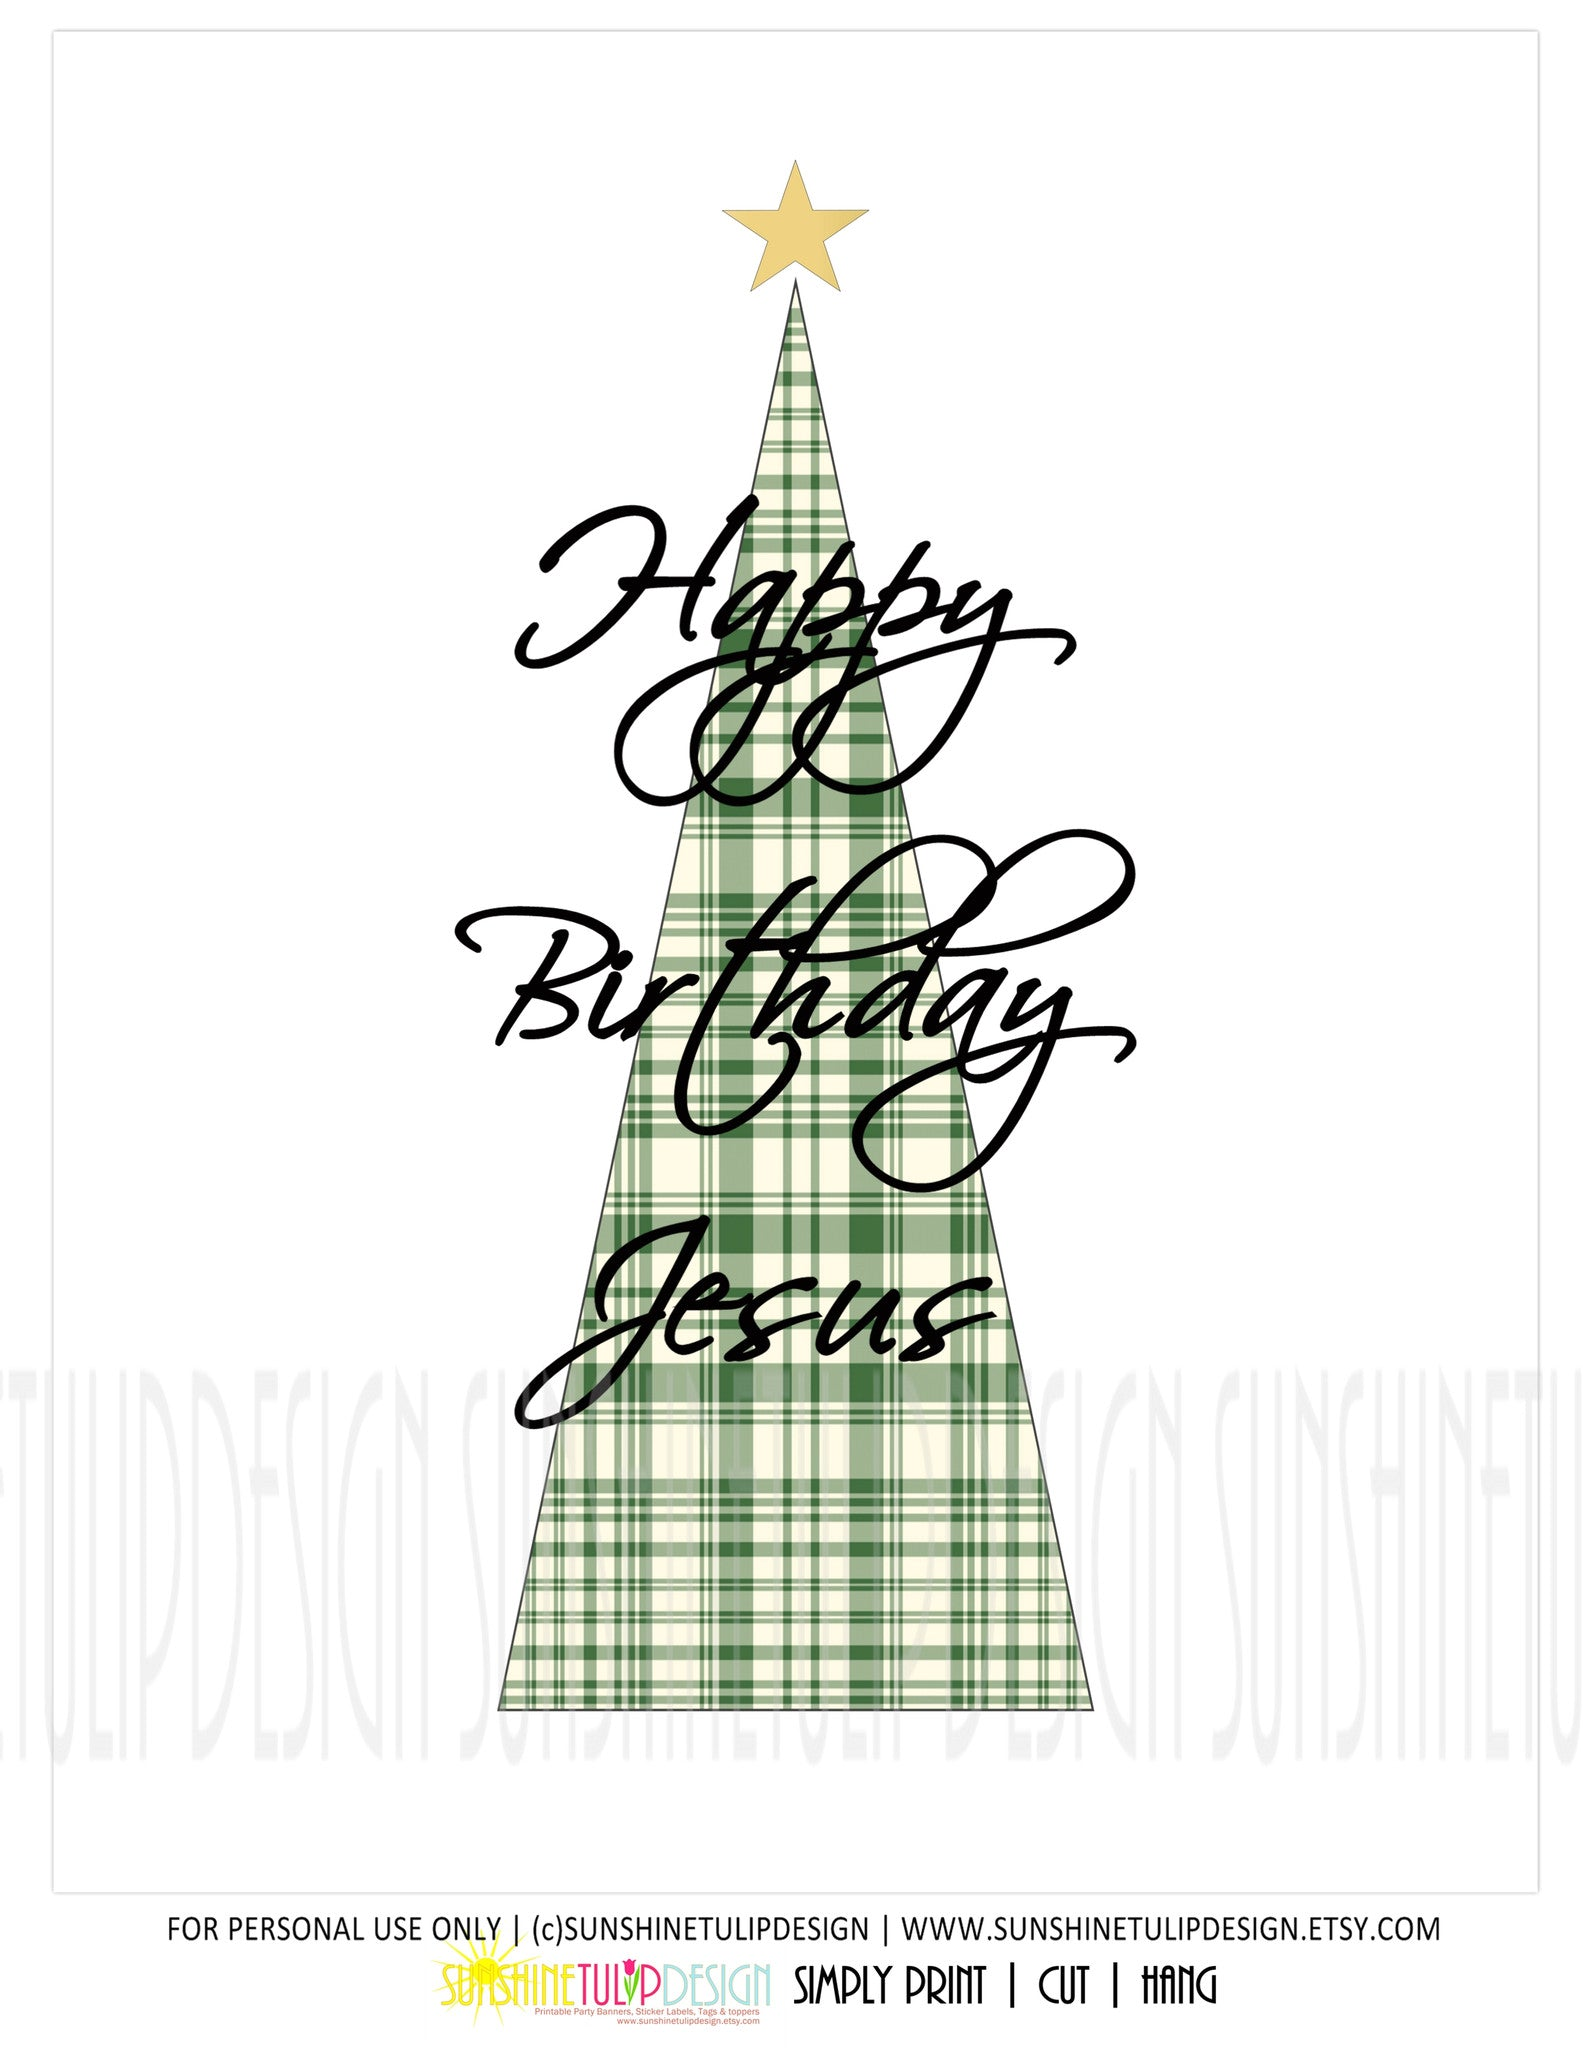 Christmas Images To Print.Printable Christmas Wall Decor Happy Birthday Jesus Christmas Print Art Plaid Christmas Tree By Sunshinetulipdesign